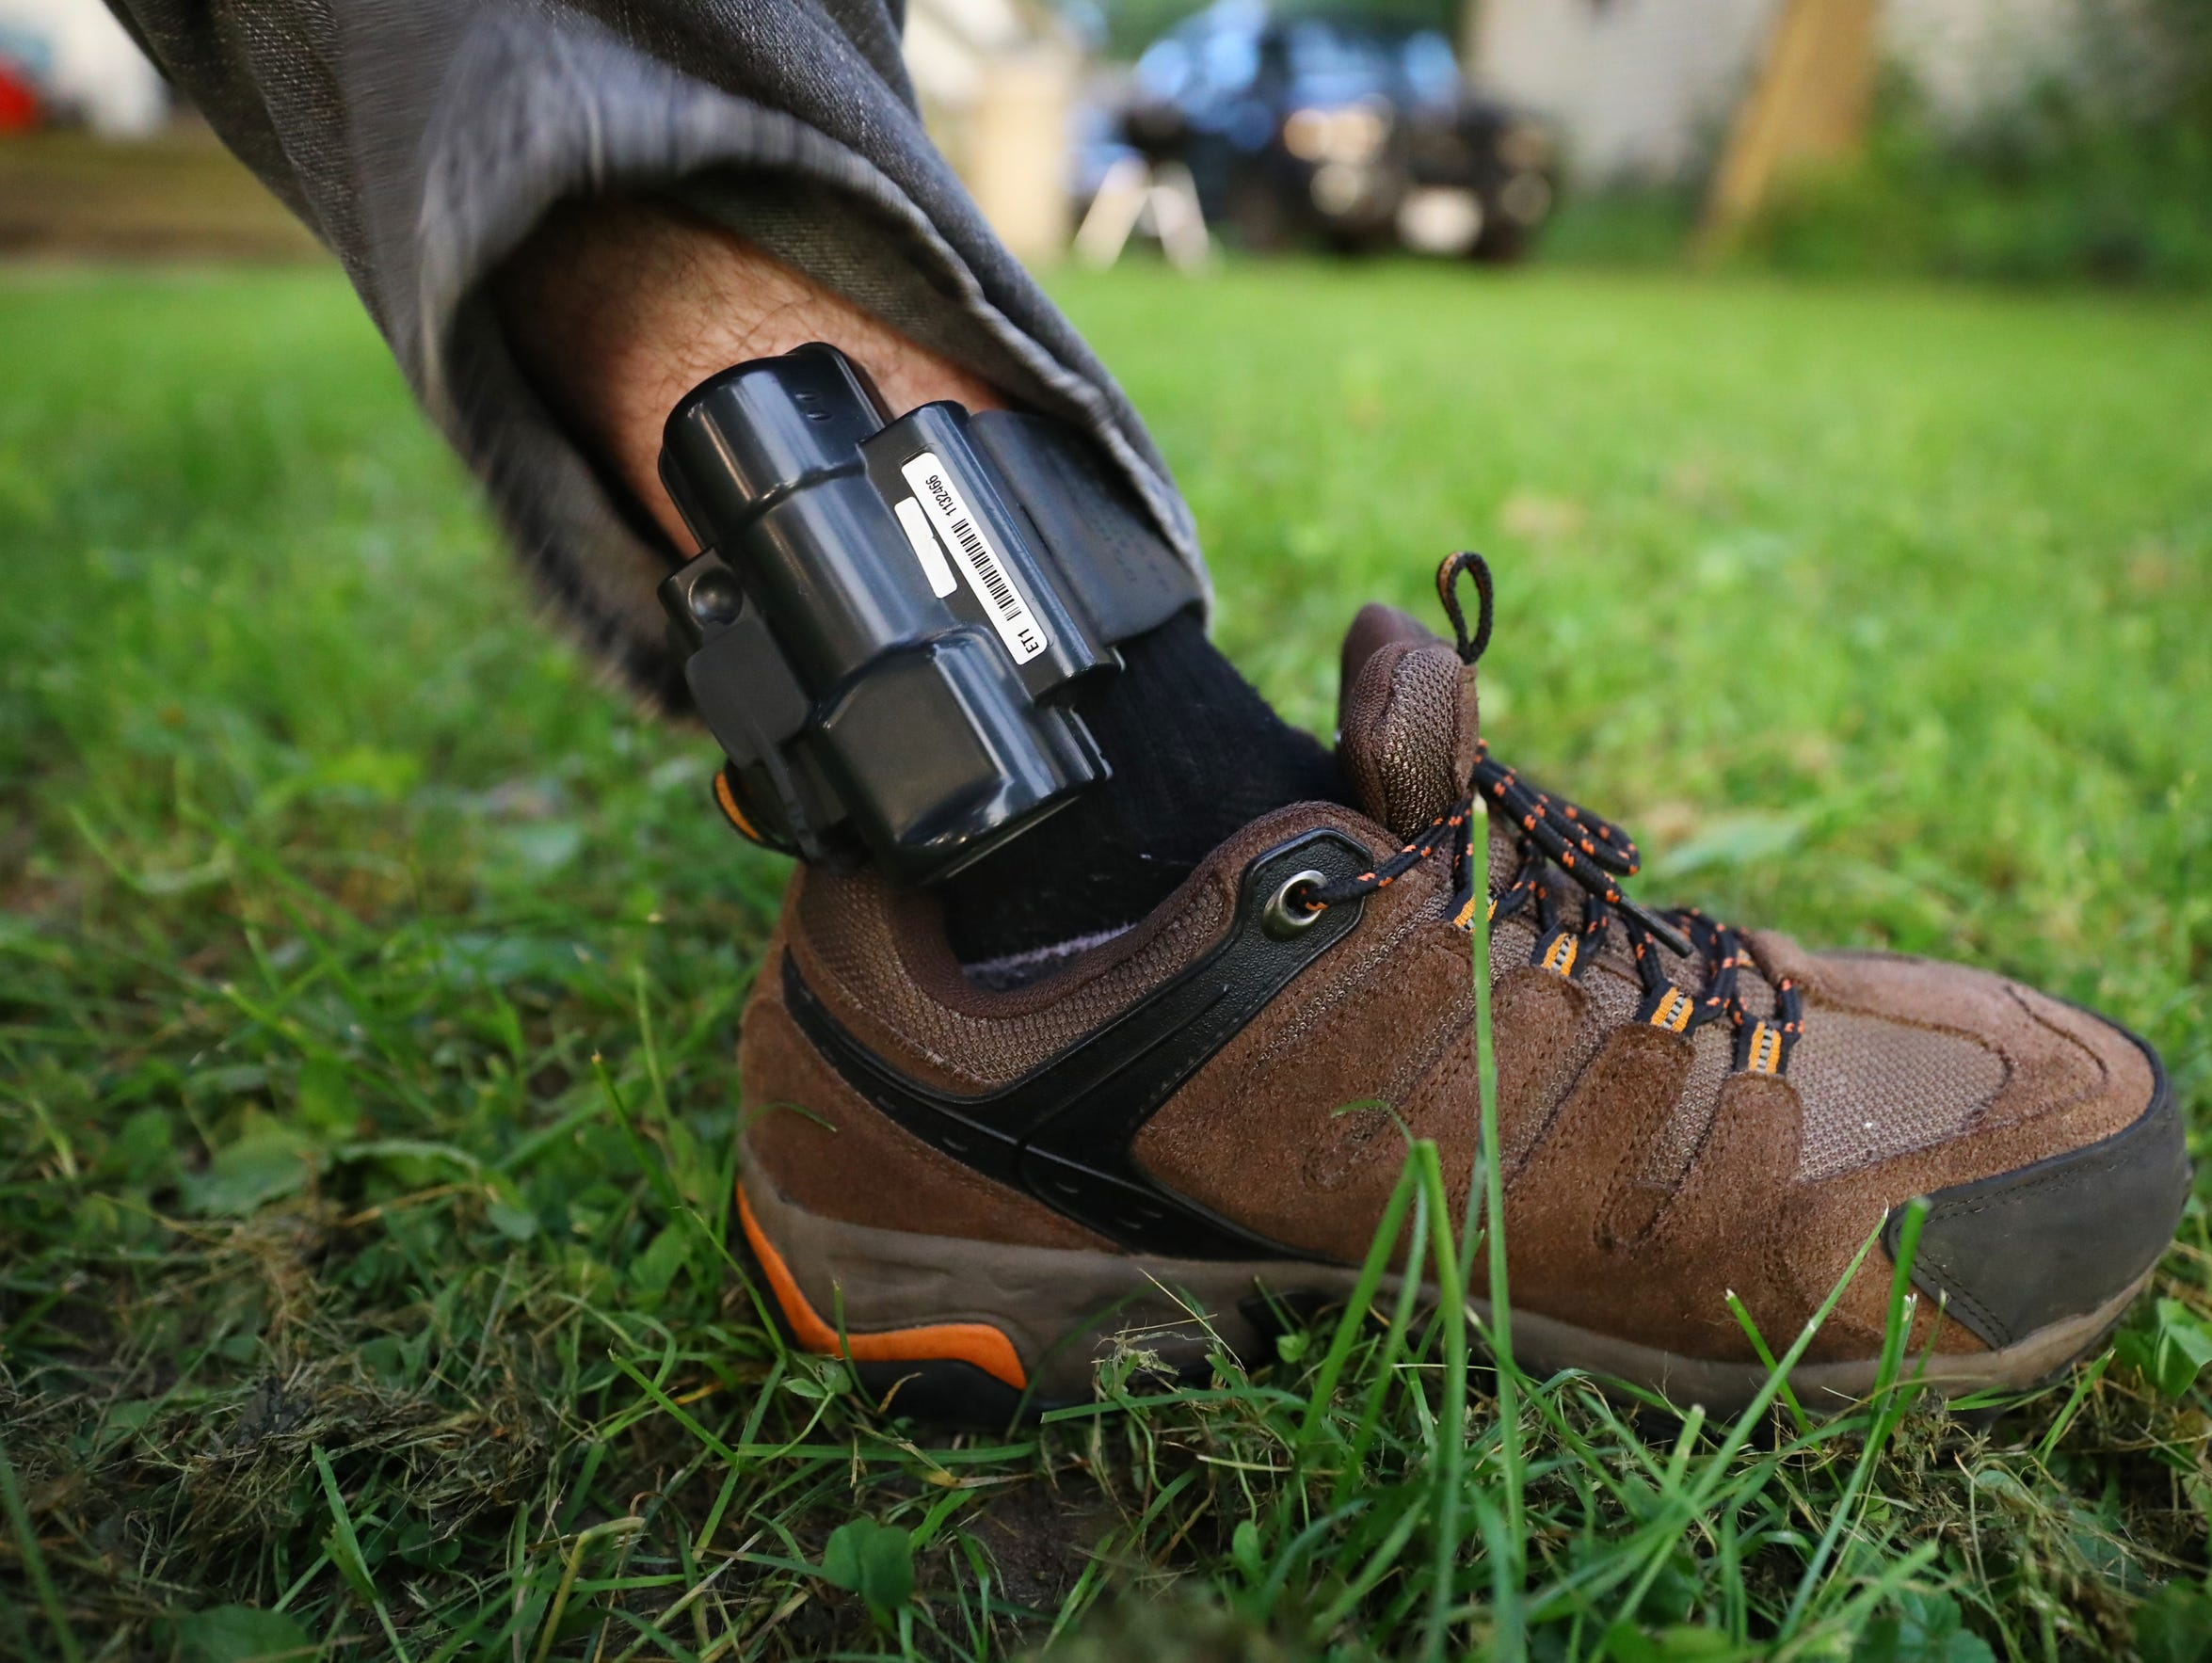 Cody McCormick, 29, shows the GPS monitoring device